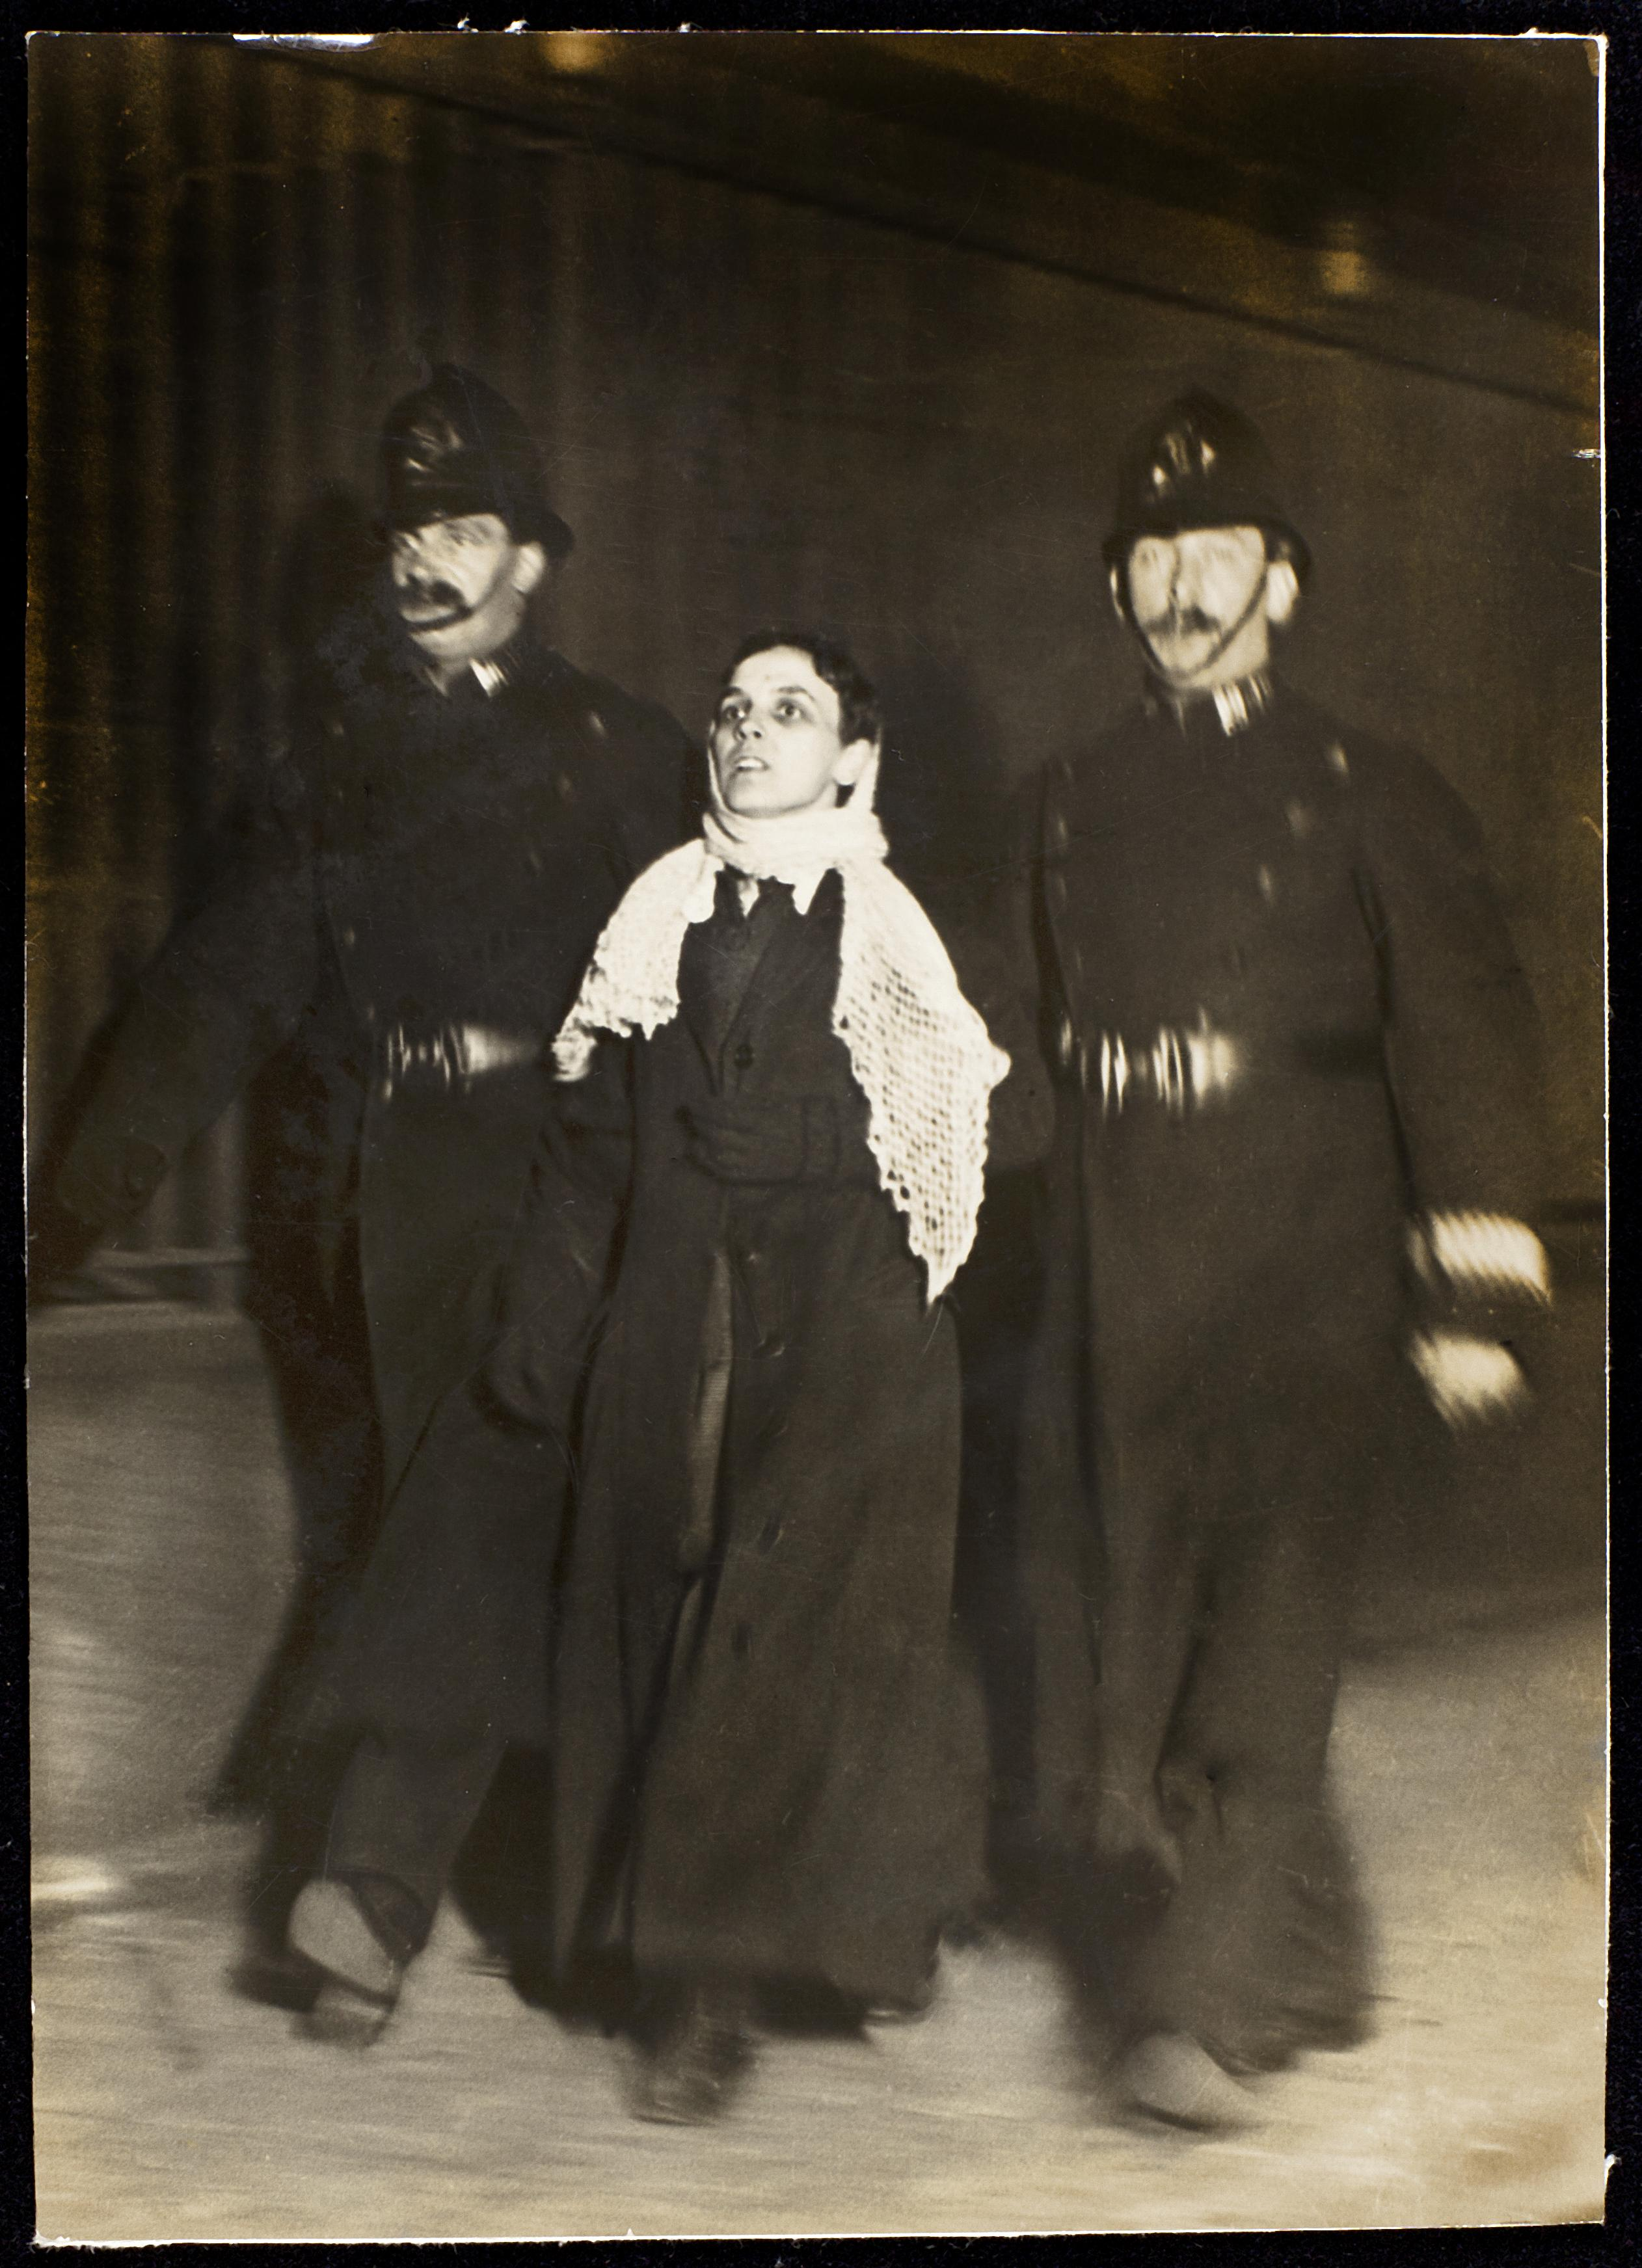 black and white photo of woman being led away by two policemen